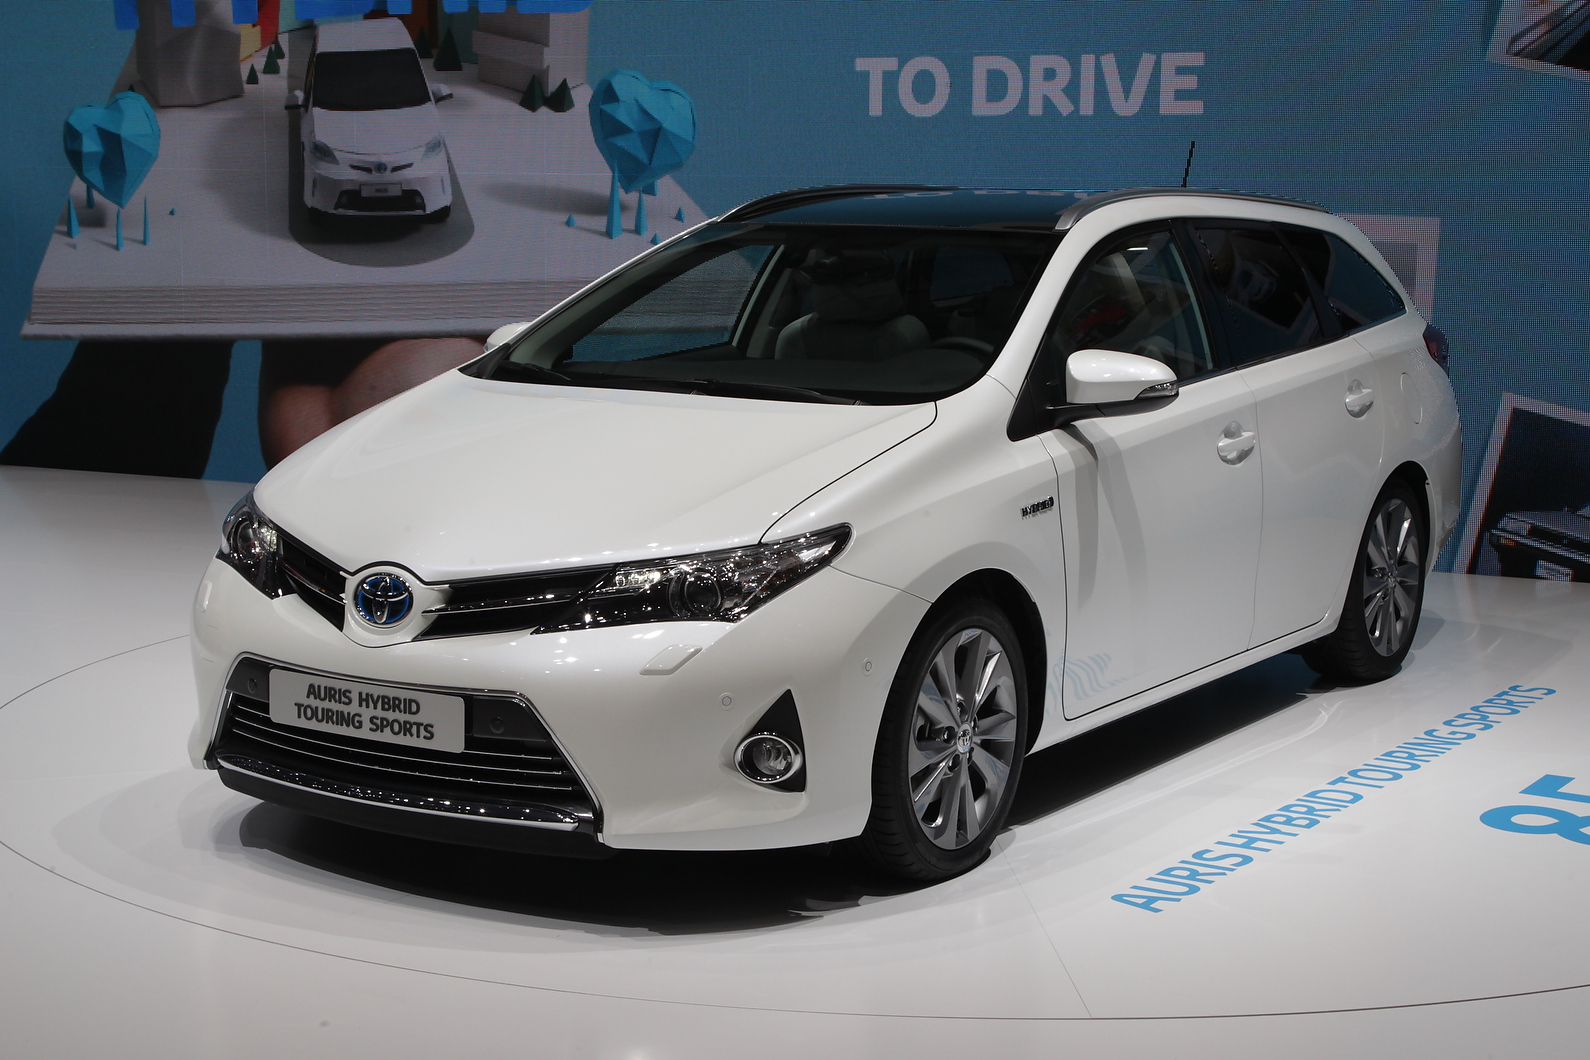 Auris Touring Sports will rival Golf estate, also unveiled at Geneva